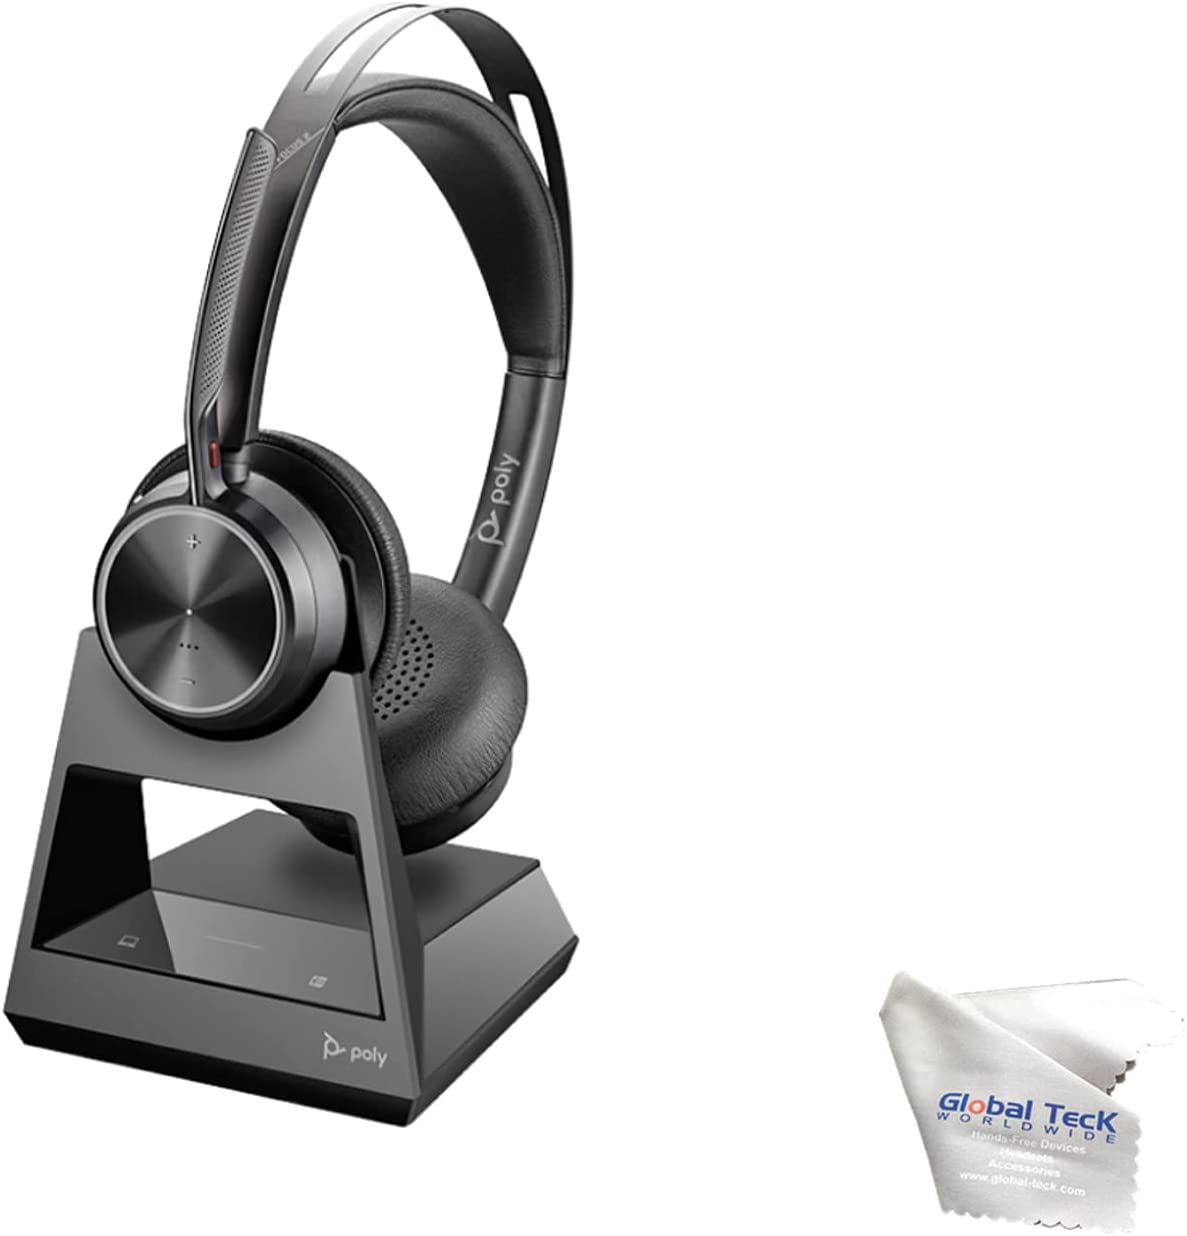 GTW Poly Voyager Focus 2 Office, Stereo Bluetooth Headset, USB-A for Certified for Teams, Connects to Deskphone, PC/Mac, Smartphone - Works with Zoom, RingCentral, 8x8, Vonage, Bonus Microfiber